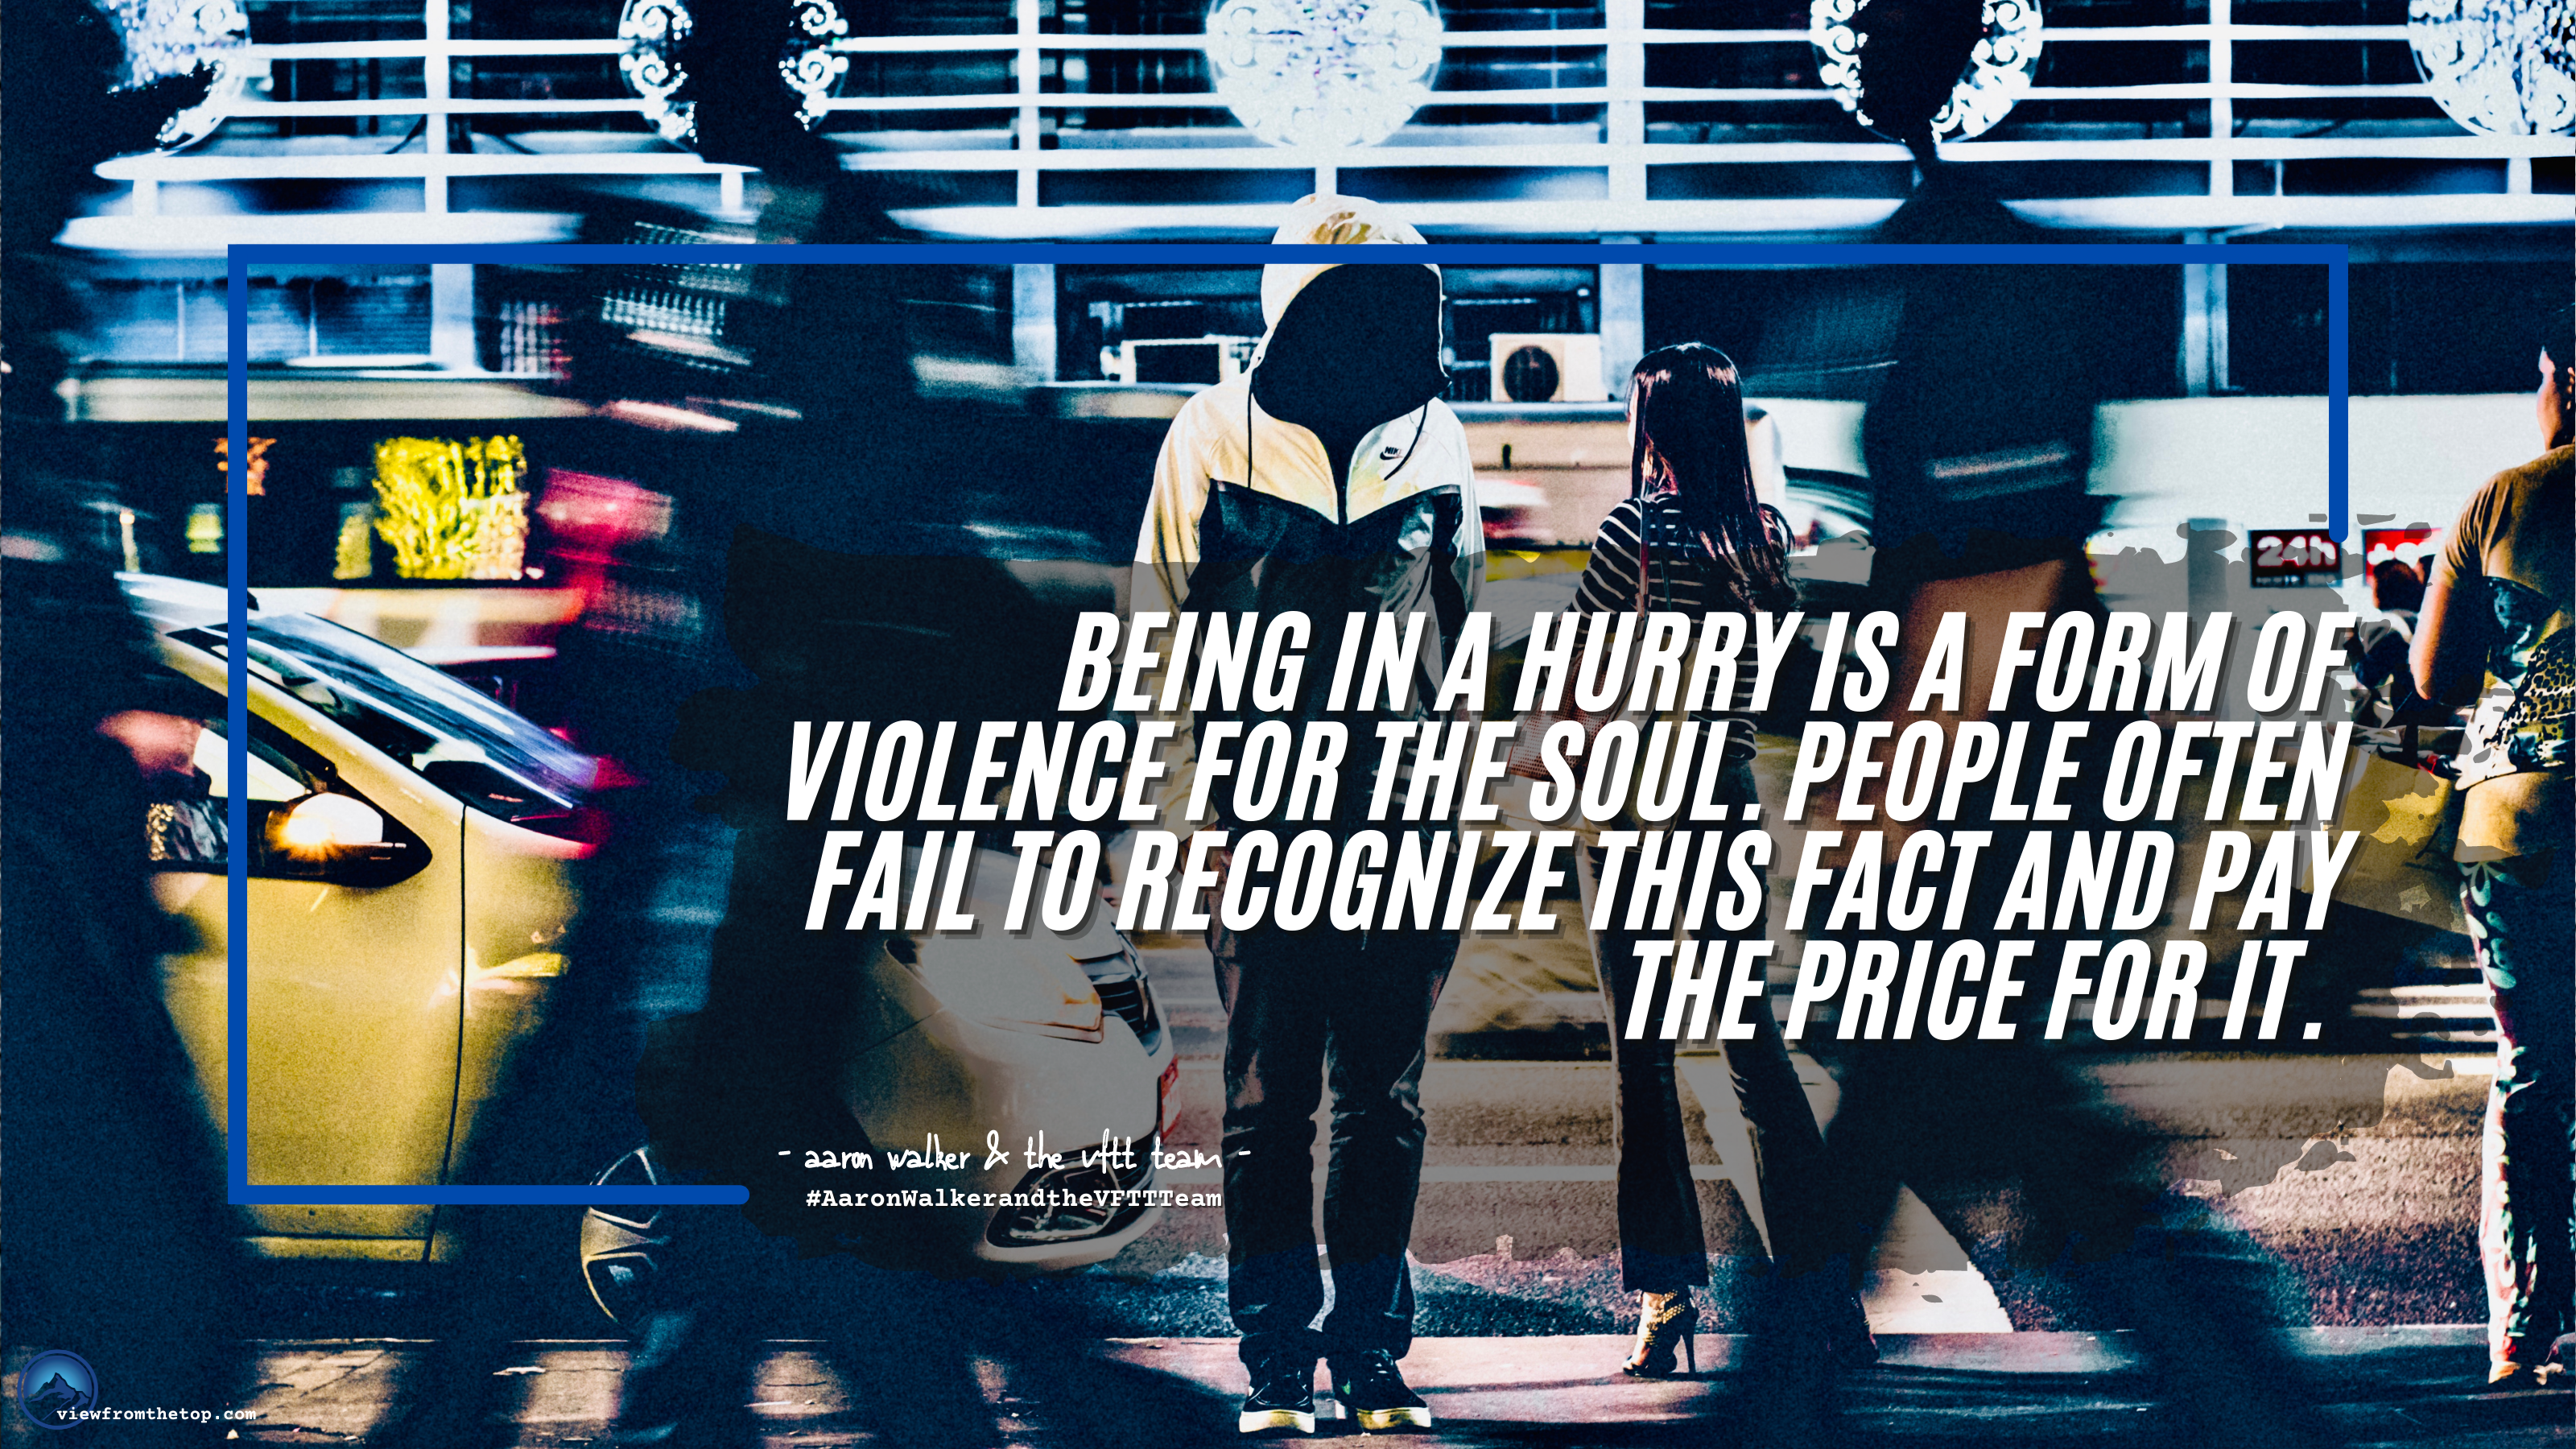 Being in a hurry is a form of violence for the soul. People often fail to recognize this fact and pay the price for it.